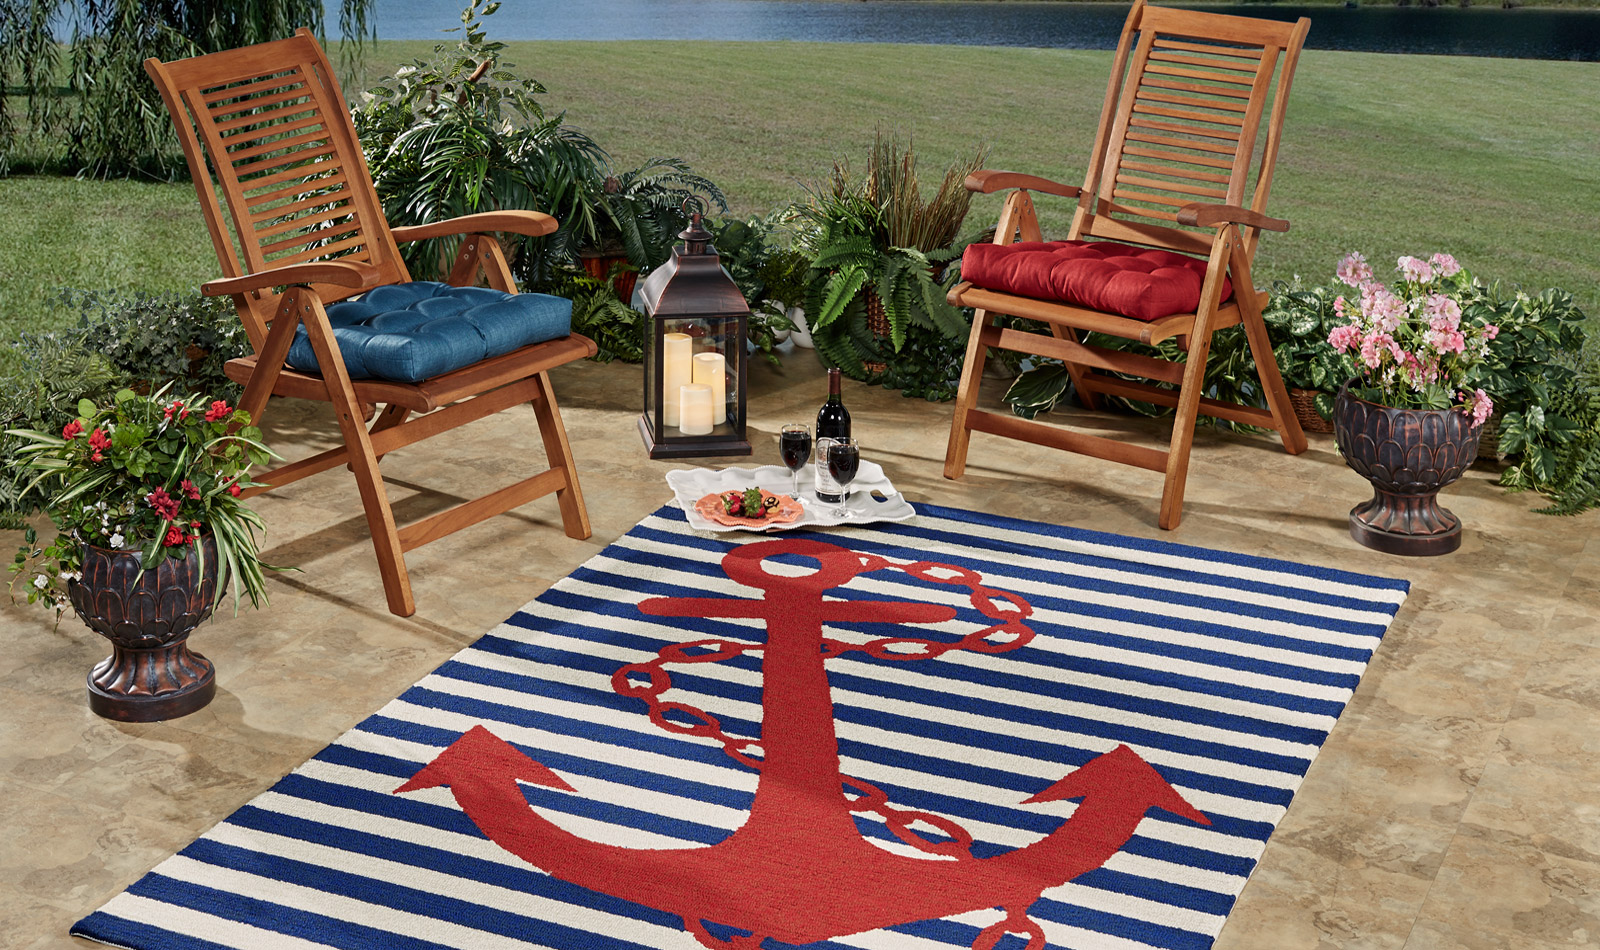 Get the Look - Nautical Backyard Patio - Red